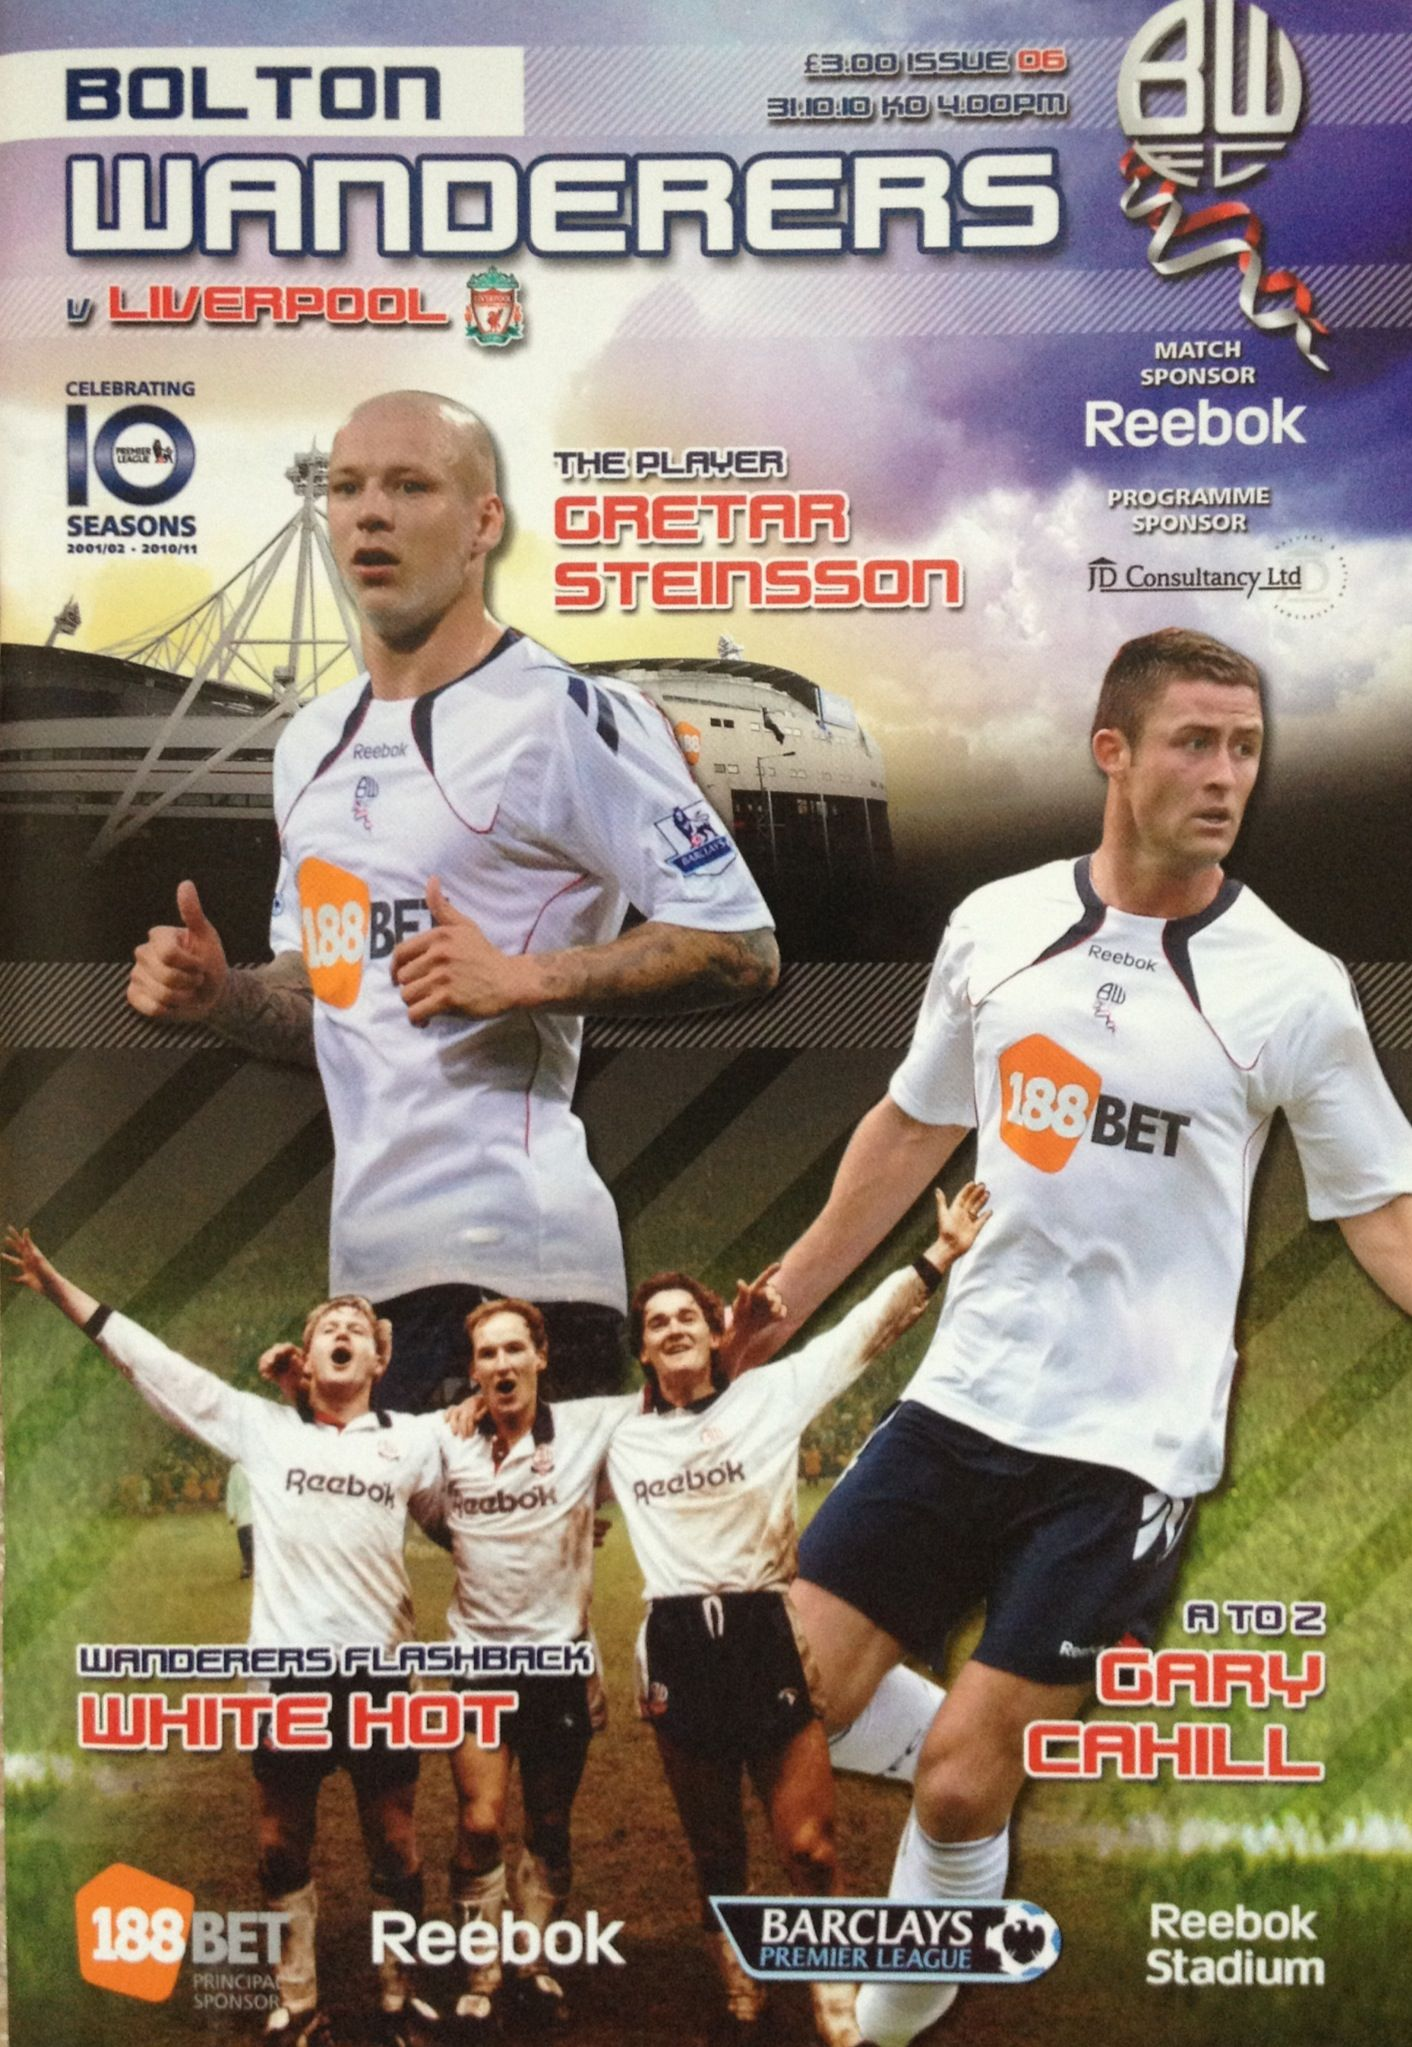 31/10/2010 Bolton Wanderers v Liverpool (With images